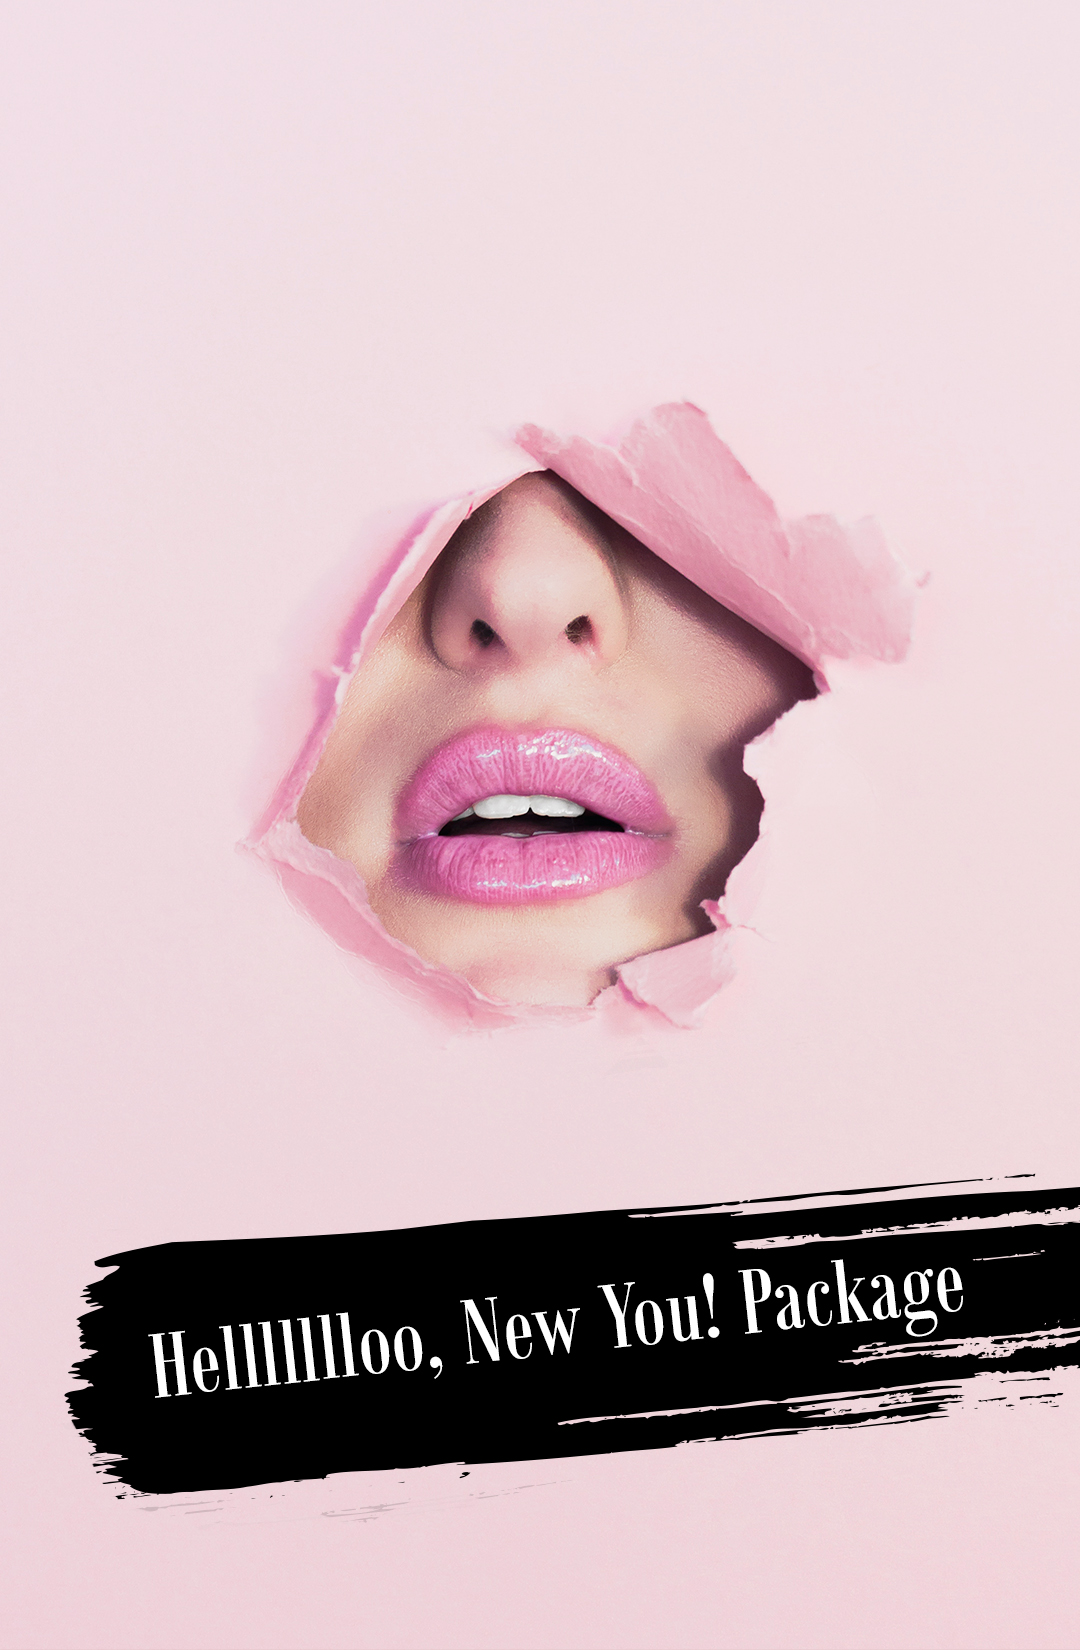 Hellllllloo, New You! Package.jpg